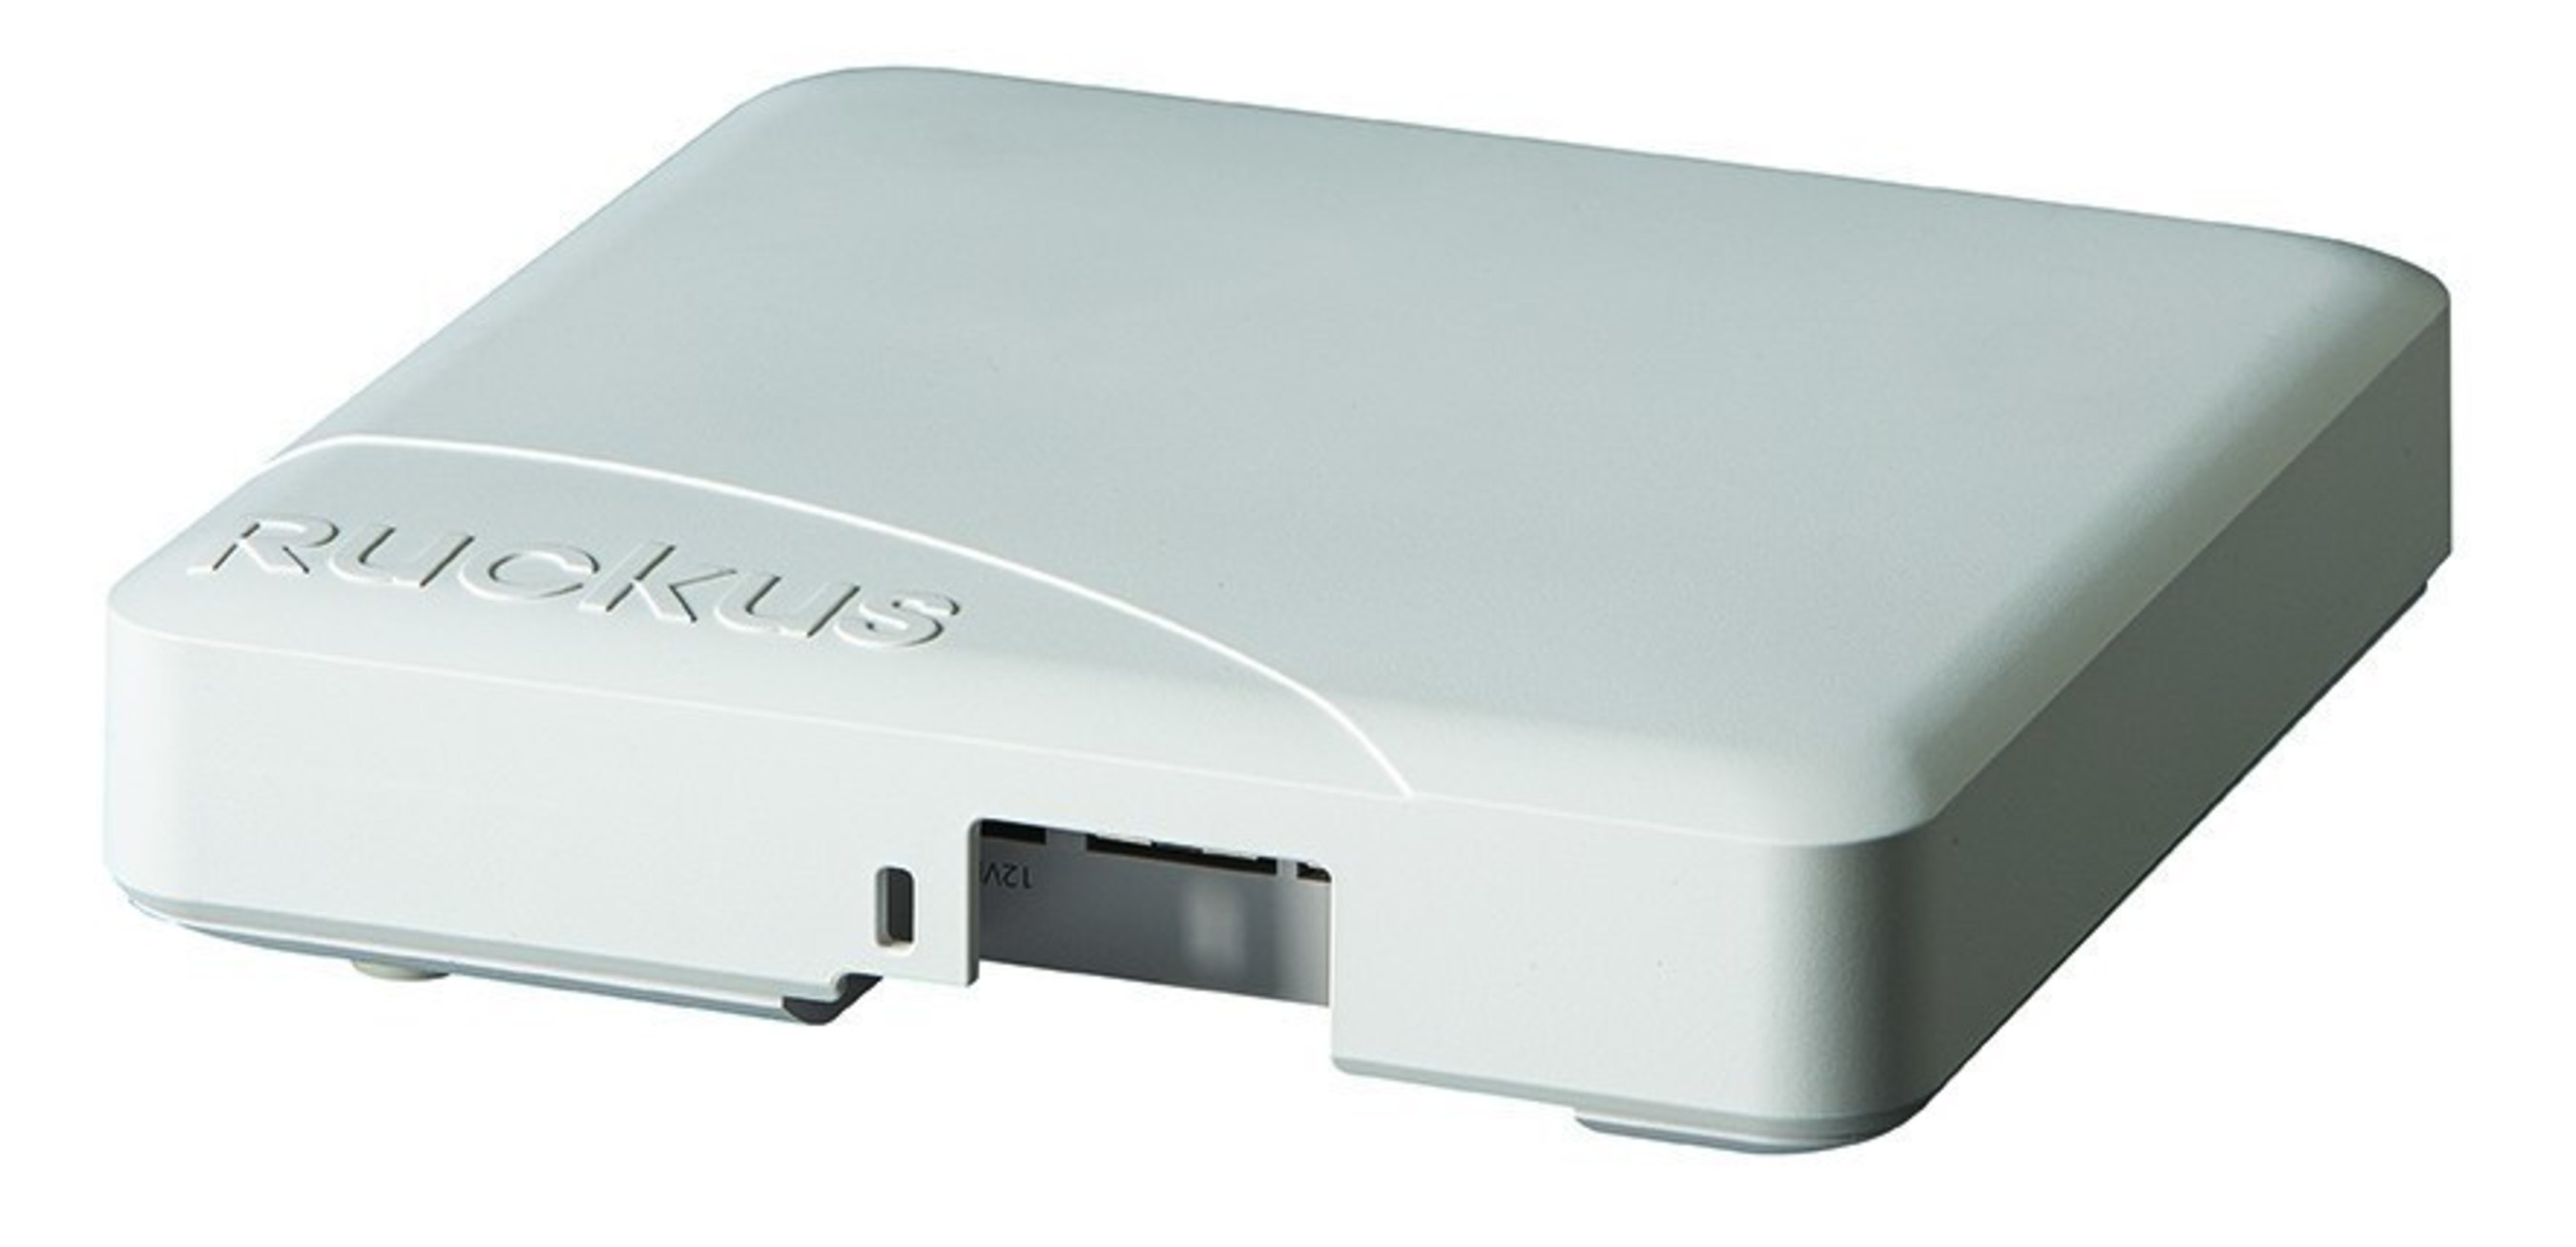 Ruckus Takes Top Marks in Recent Wi-Fi Testing Performed by